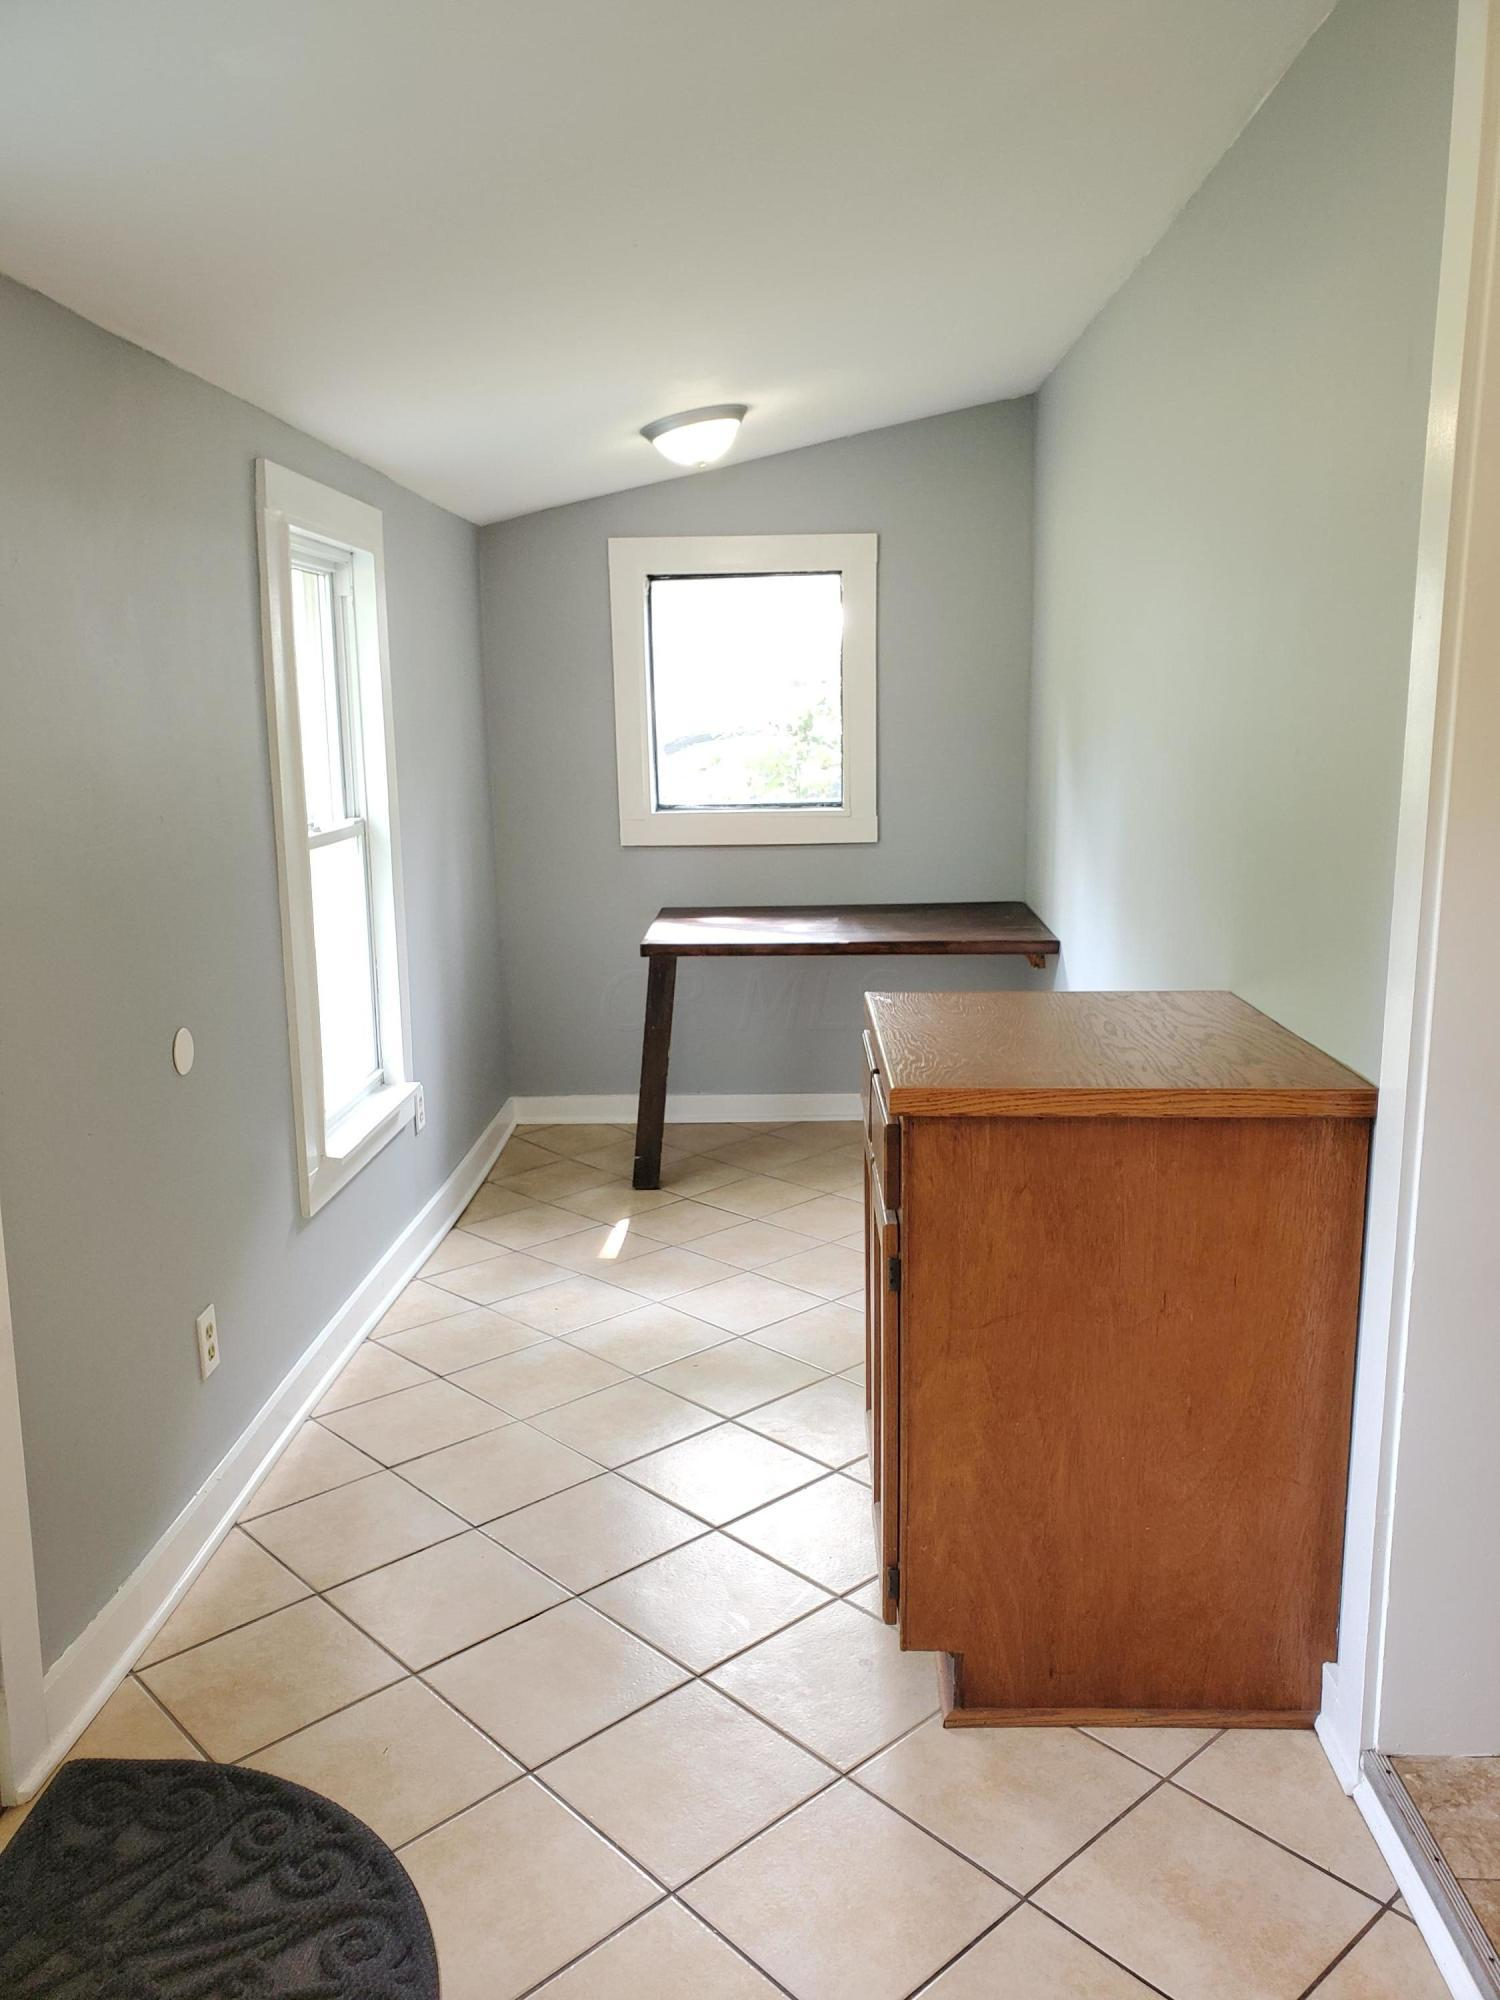 371 2nd Avenue, Galion, Ohio 44833, 2 Bedrooms Bedrooms, ,1 BathroomBathrooms,Residential,For Sale,2nd,220032438